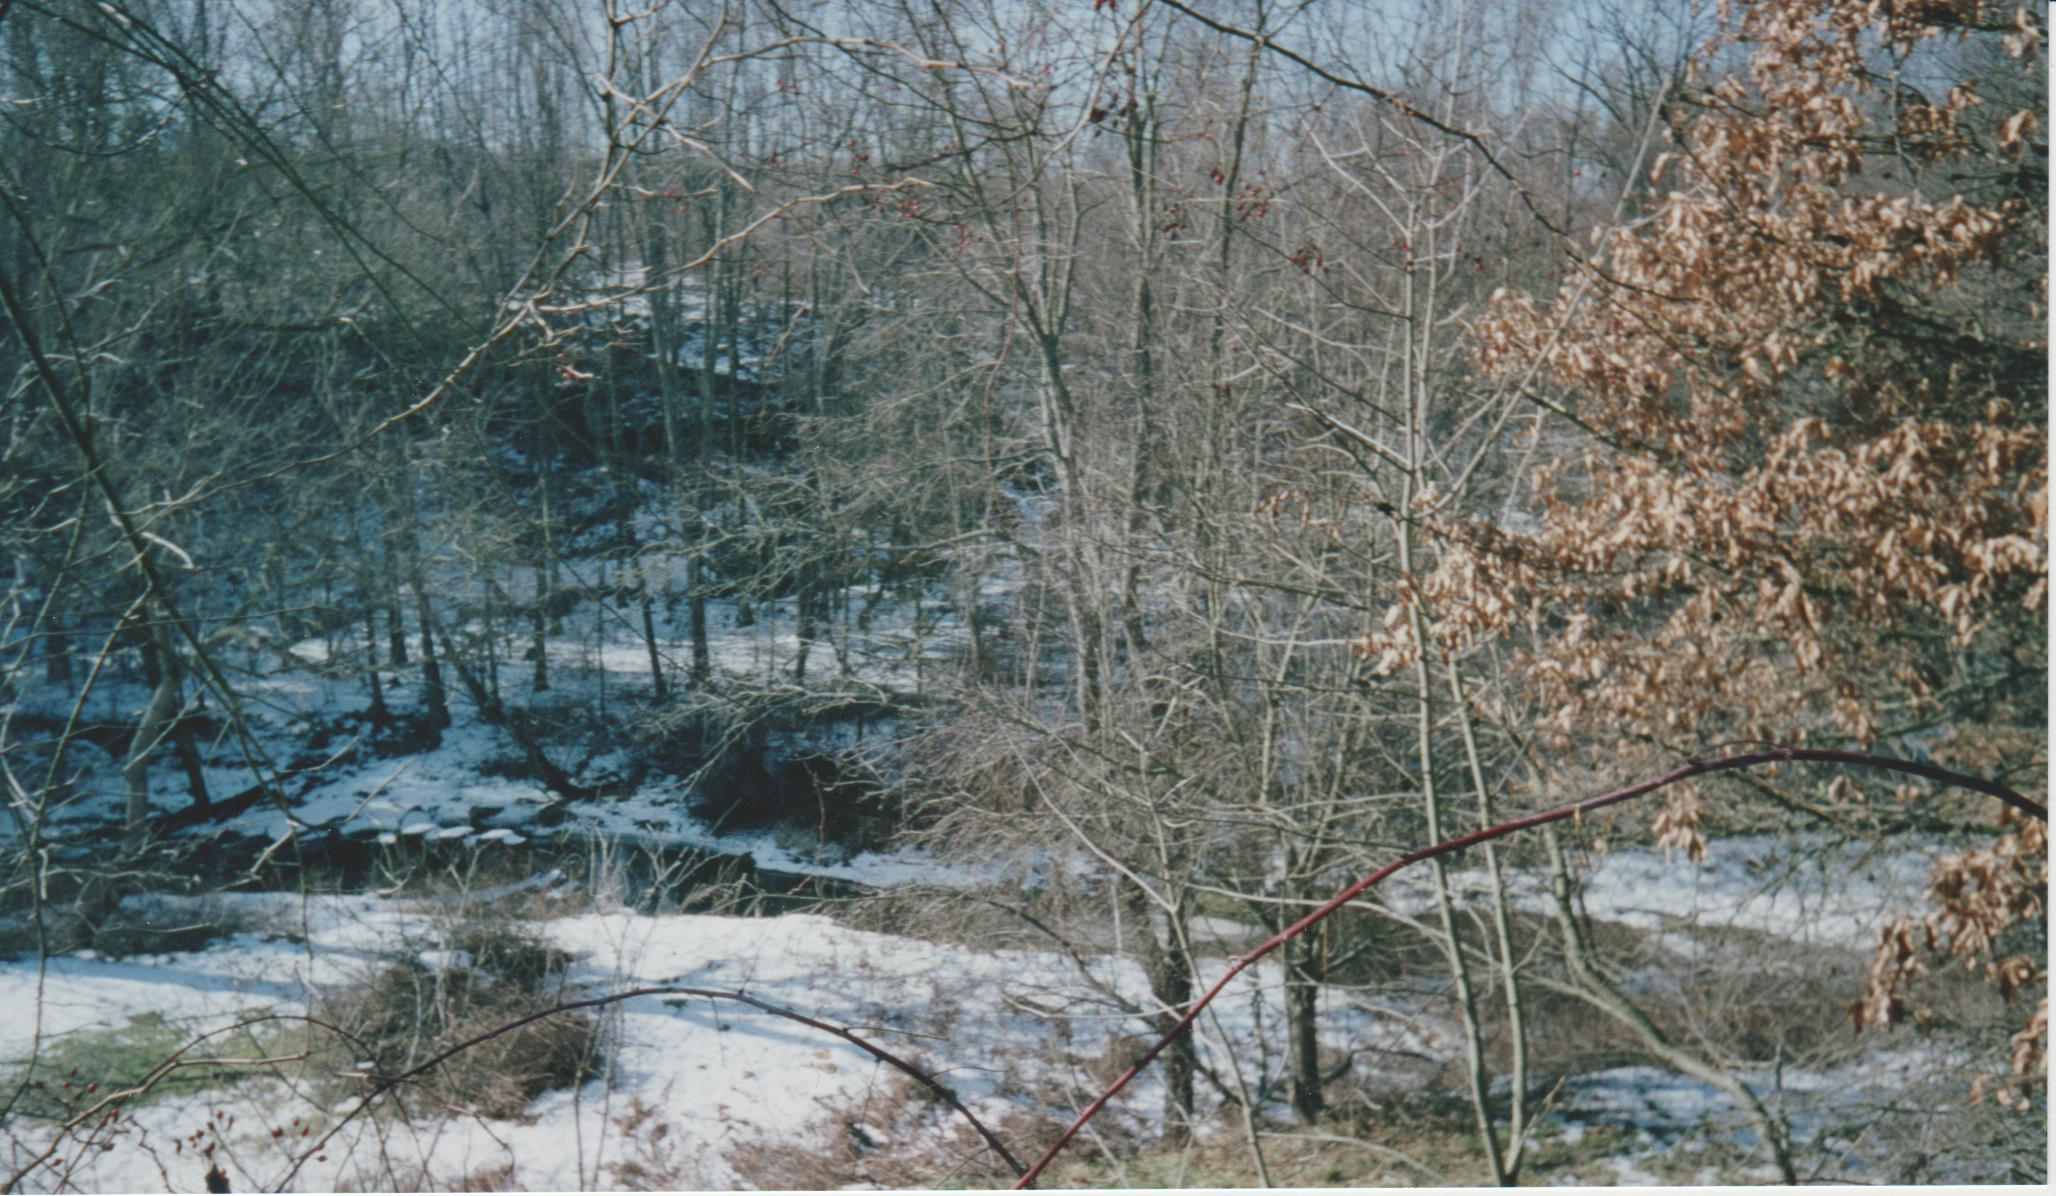 Creek and woods in Winter